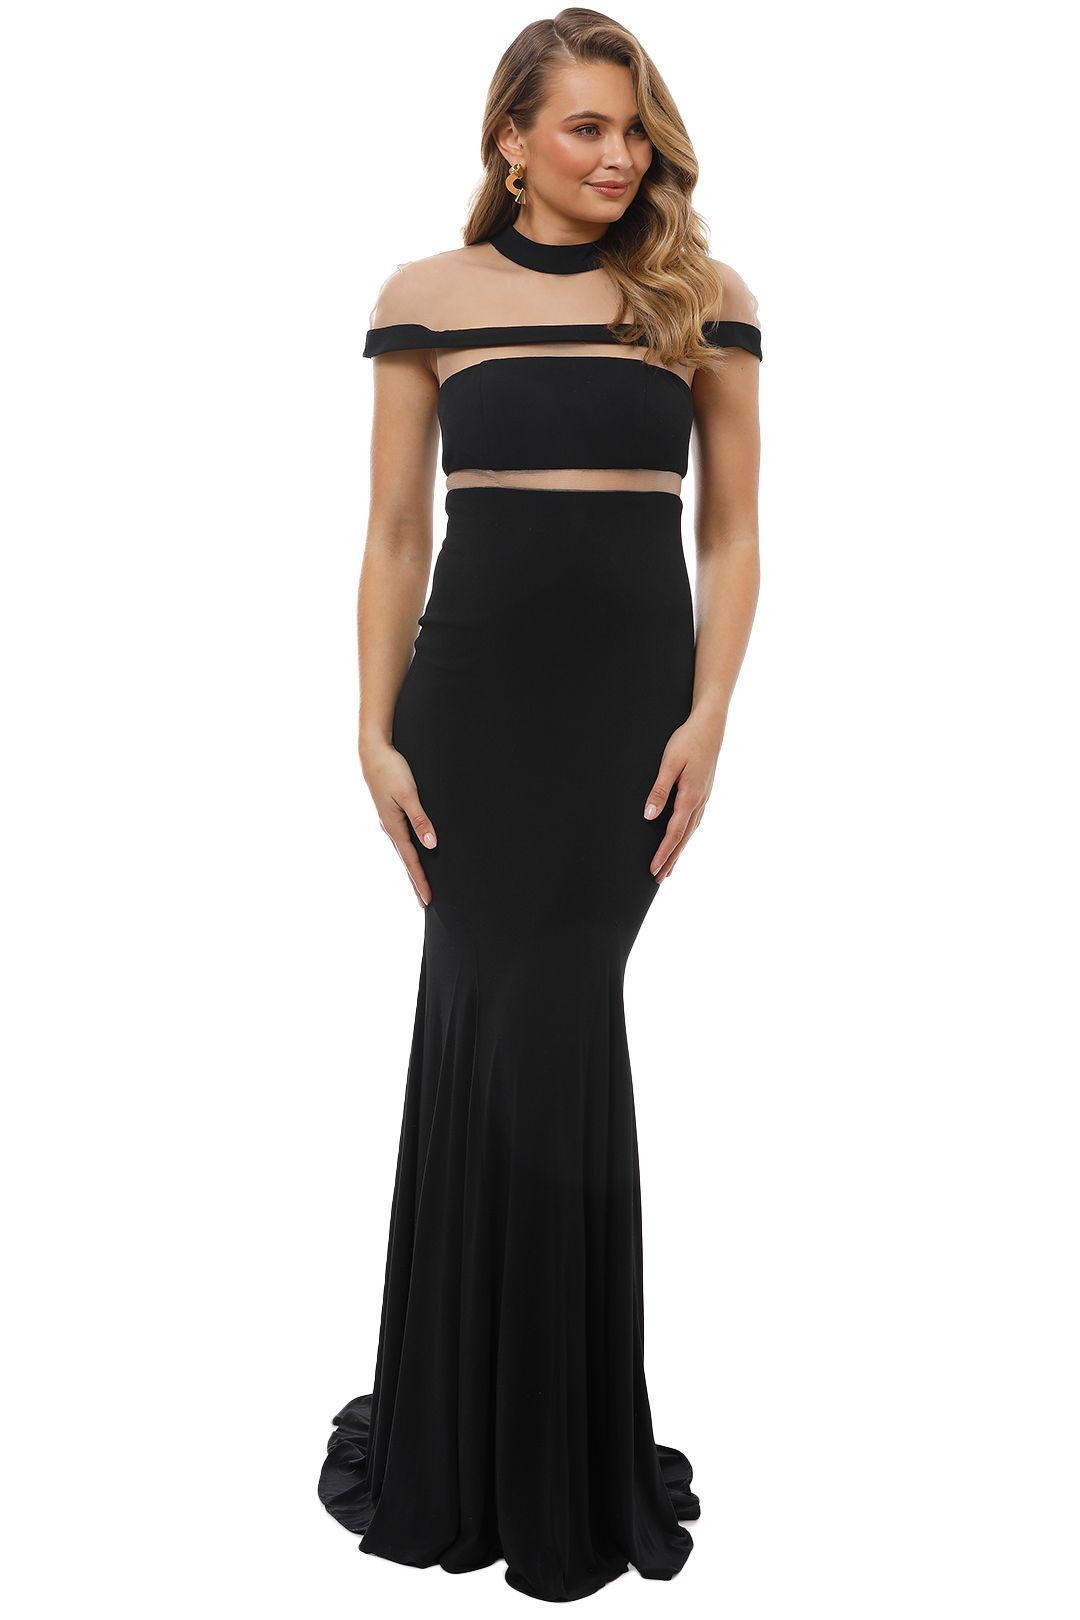 Grace and Hart - Muse Gown - Black - Front